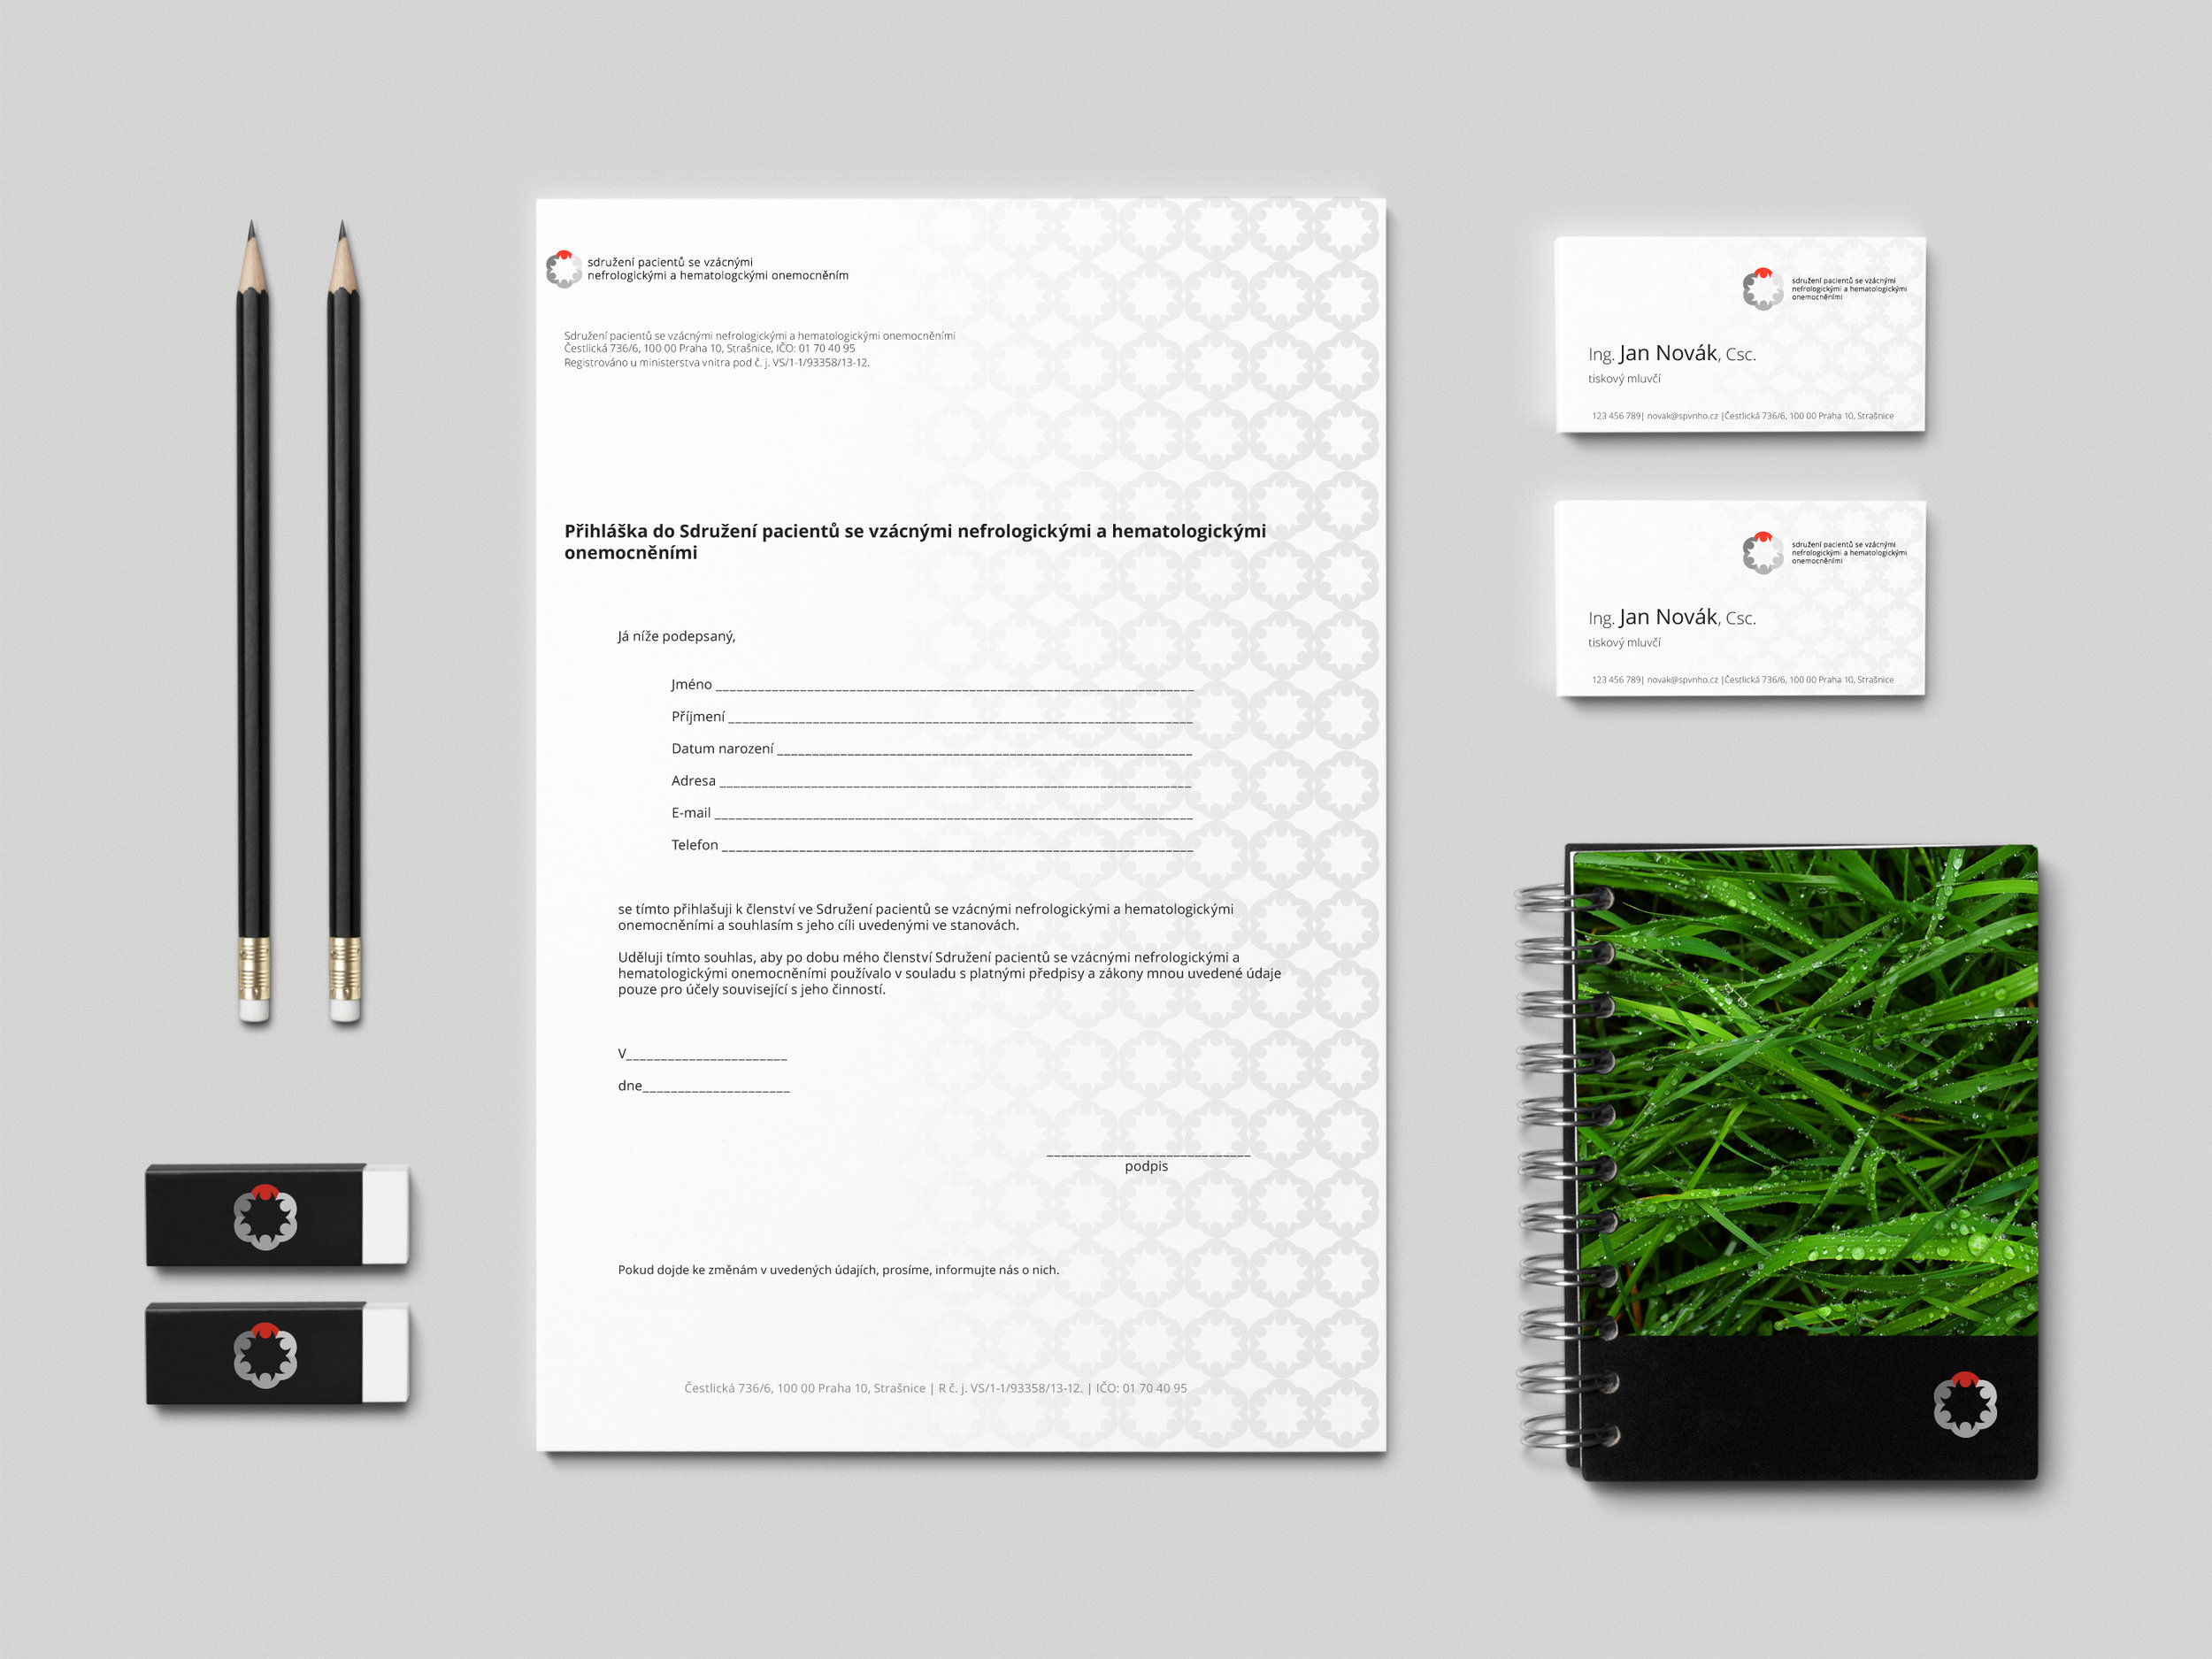 Black & White Branding Mock-Up.jpg